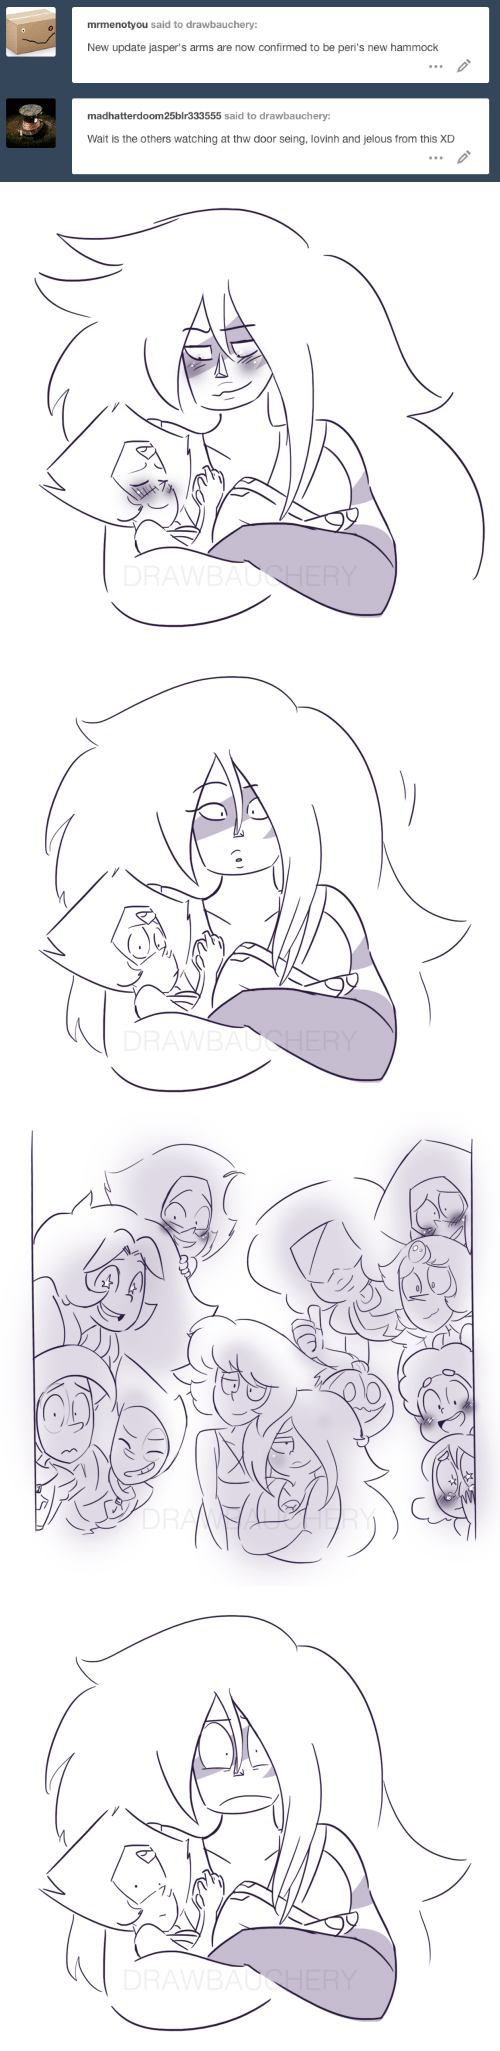 Hammock: mrmenotyou said to drawbauchery:  New update jasper's arms are now confirmed to be peri's new hammock  madhatterdoom25blr333555 said to drawbauchery:  Wait is the others watching at thw door seing, lovinh and jelous from this XD